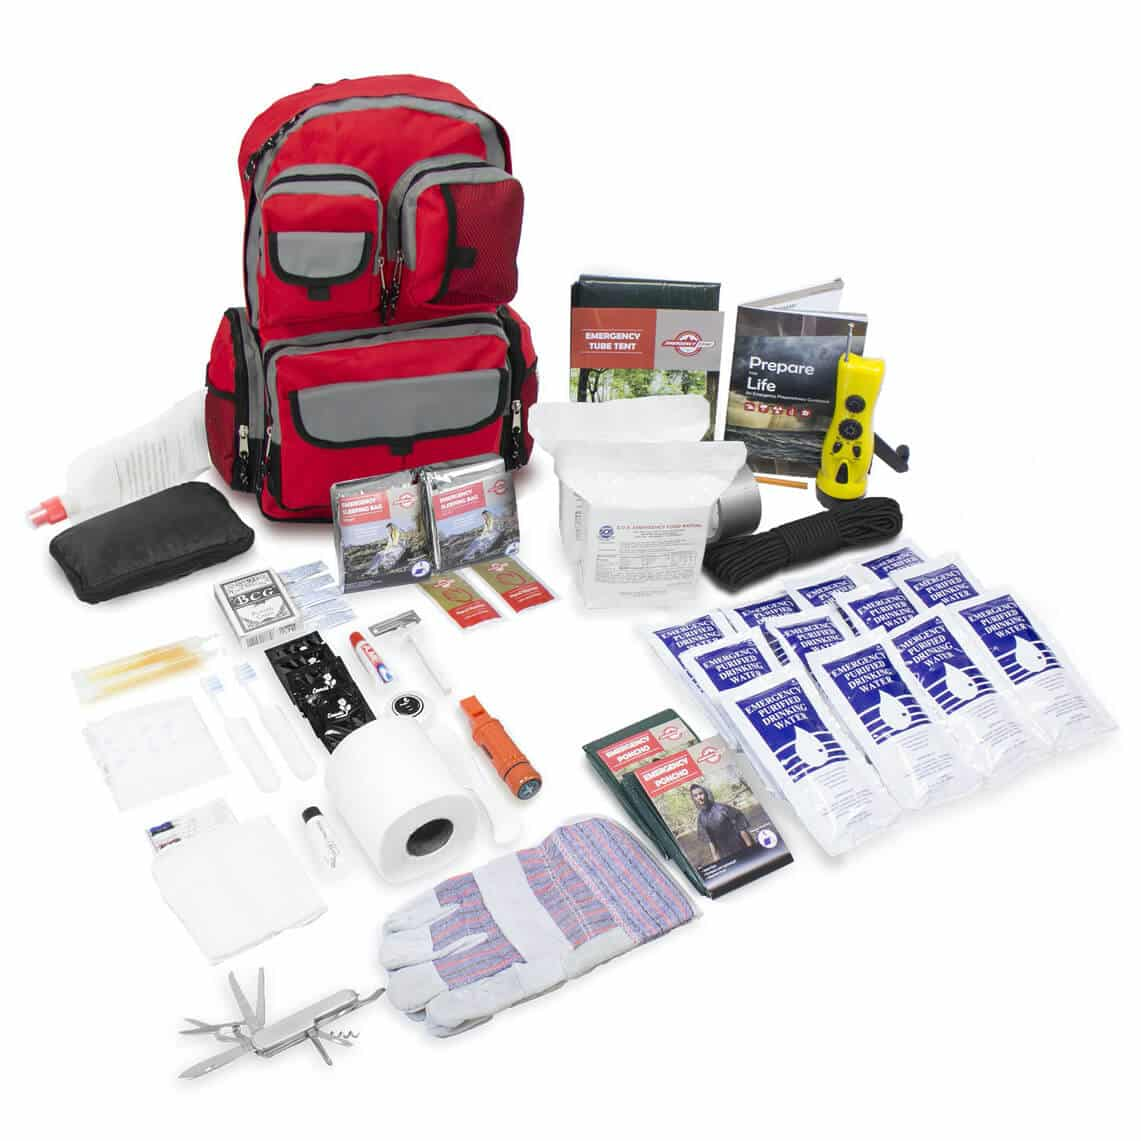 Emergency Zone Deluxe Urban Survival Kit - Red Backpack